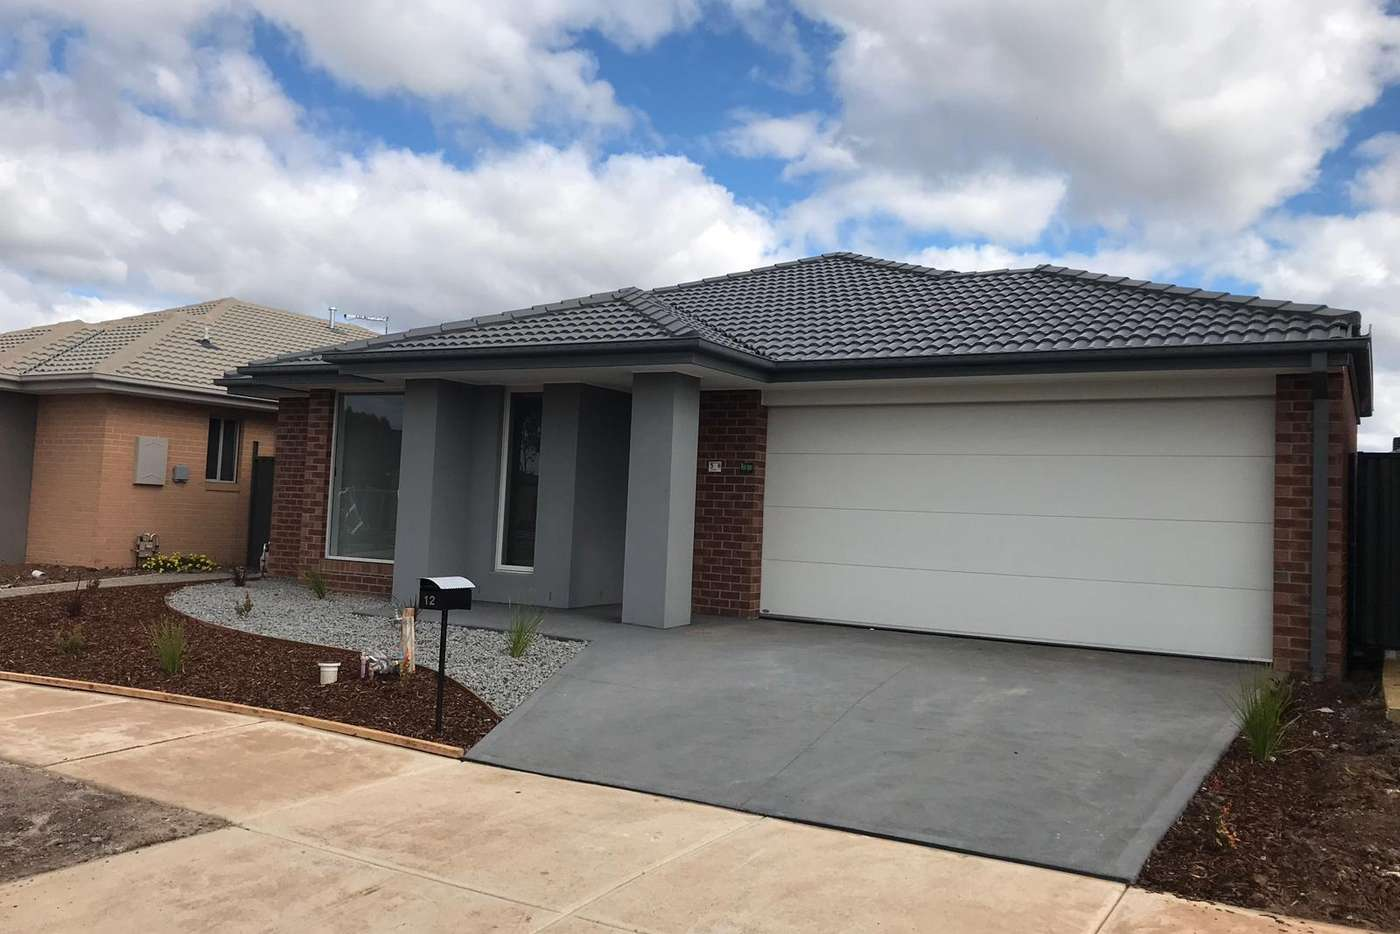 Main view of Homely house listing, 12 Heaton Street, Tarneit VIC 3029